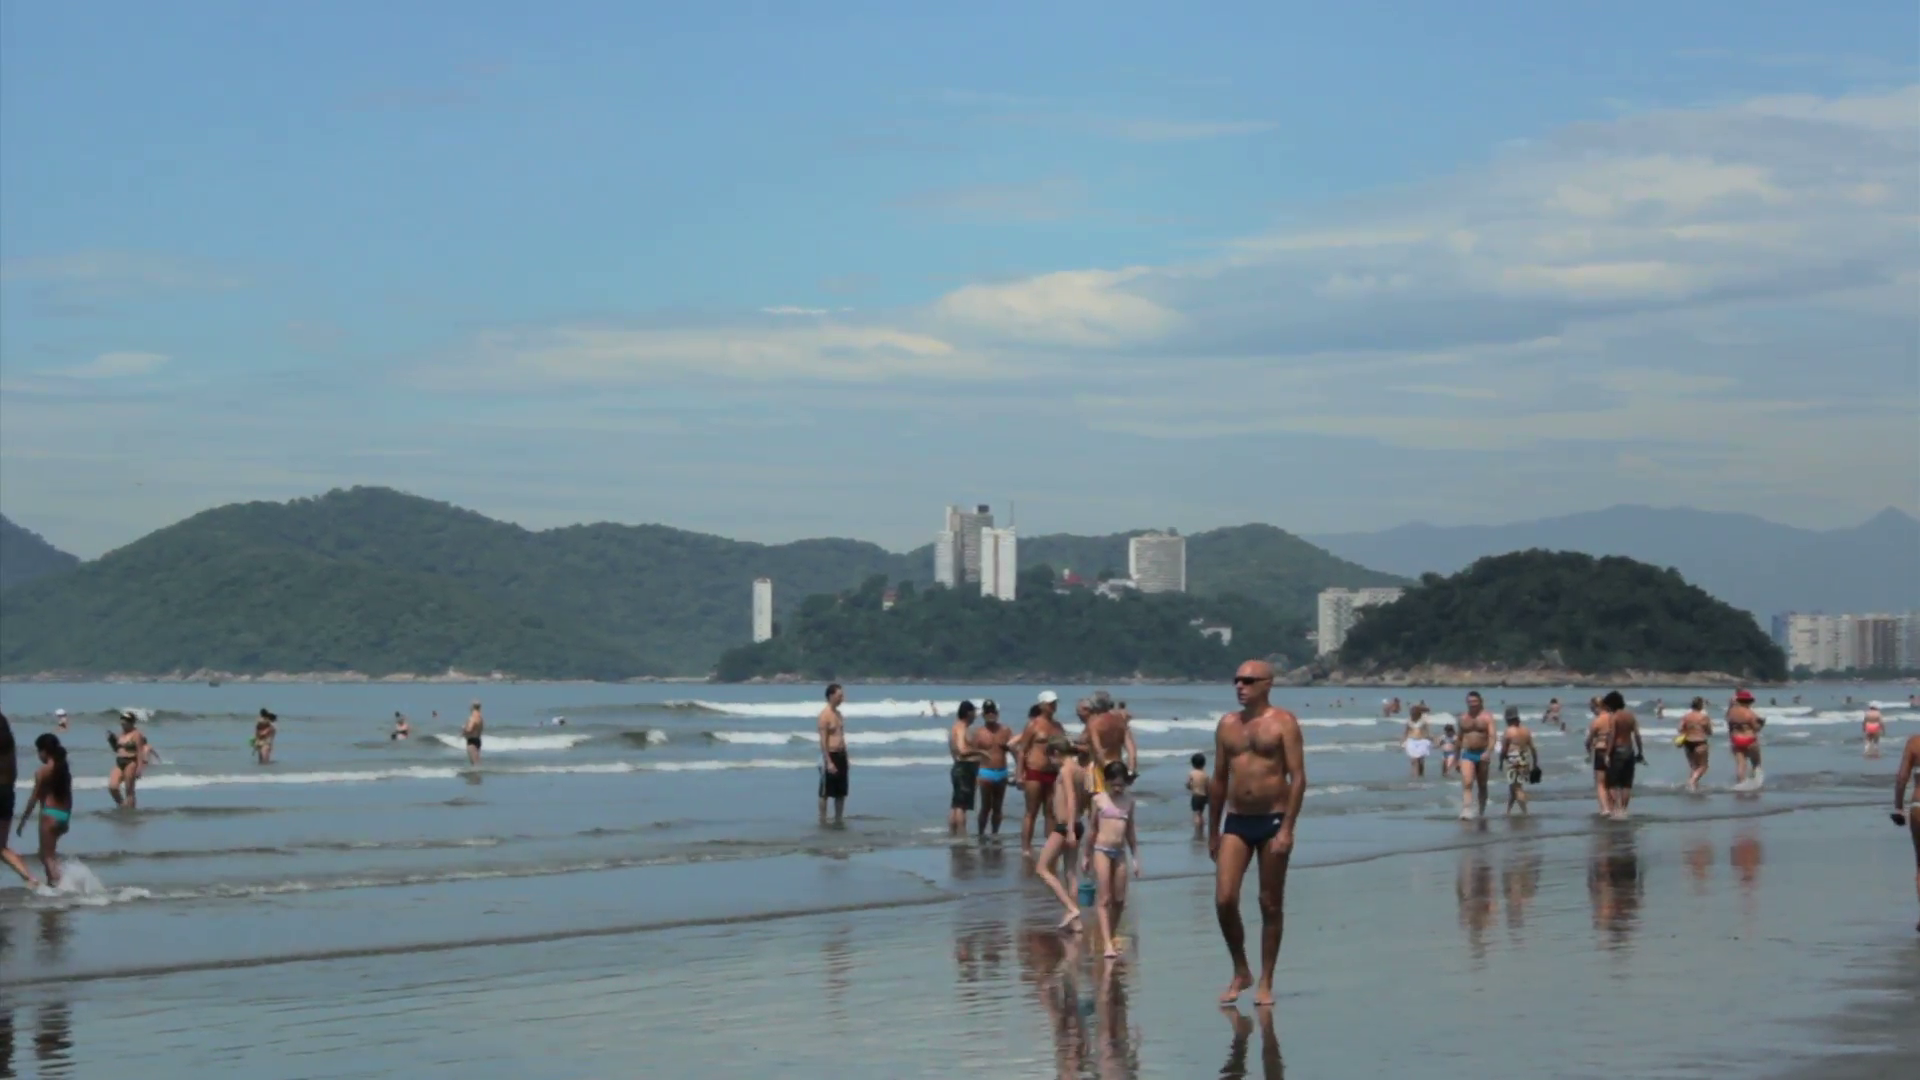 People chilling at Santos Beach Sao Paulo Brazil Stock Video 1920x1080